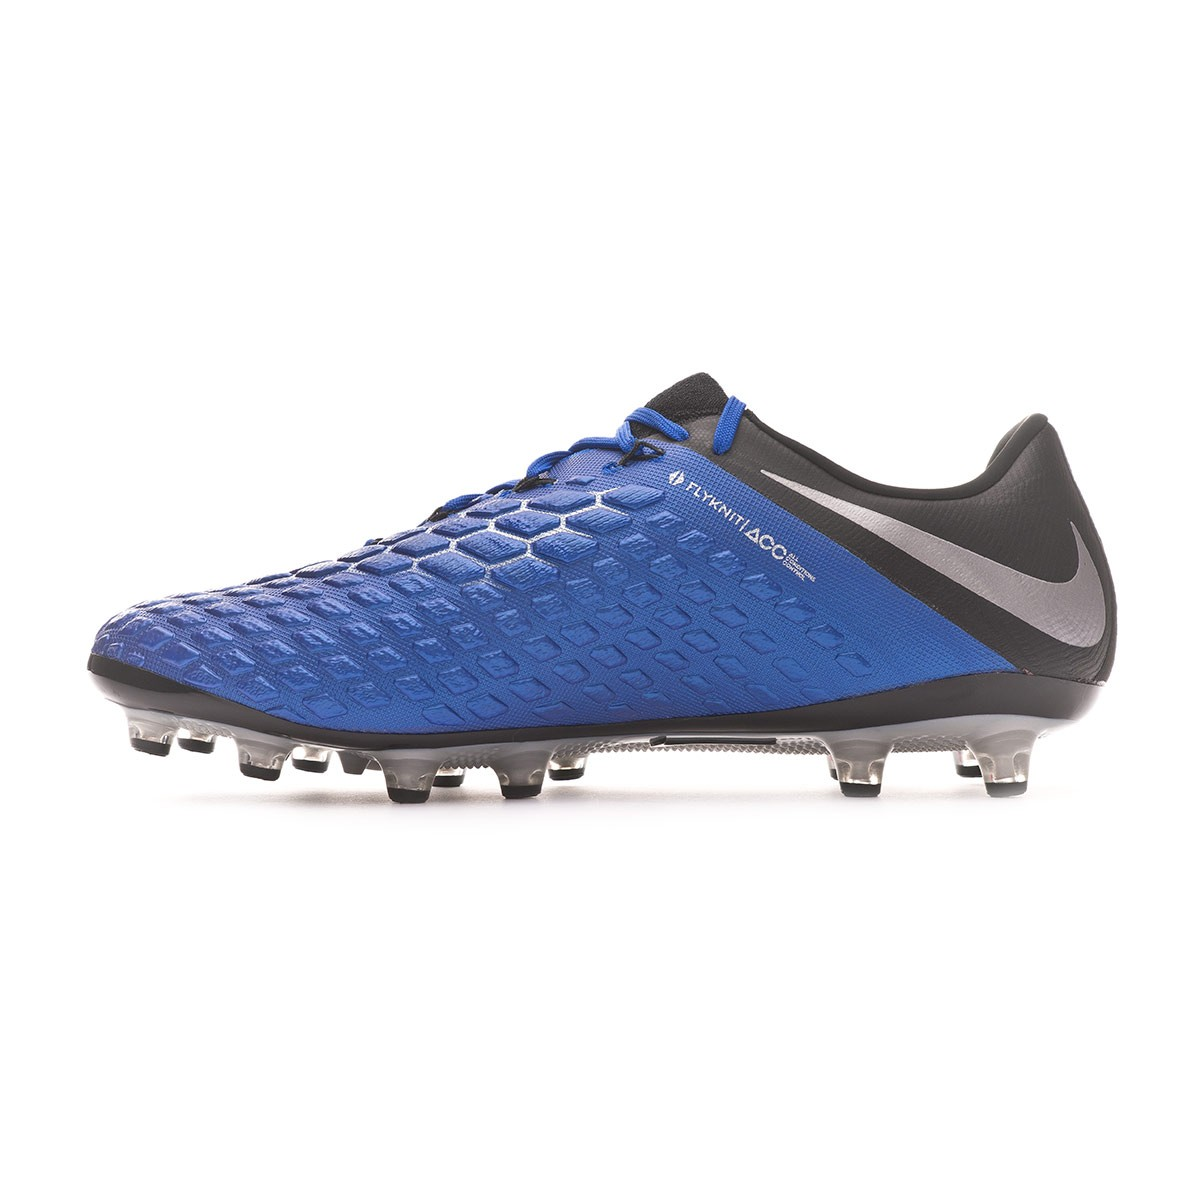 best authentic on feet shots of sale usa online Nike Hypervenom Phantom III Elite AG-Pro Football Boots